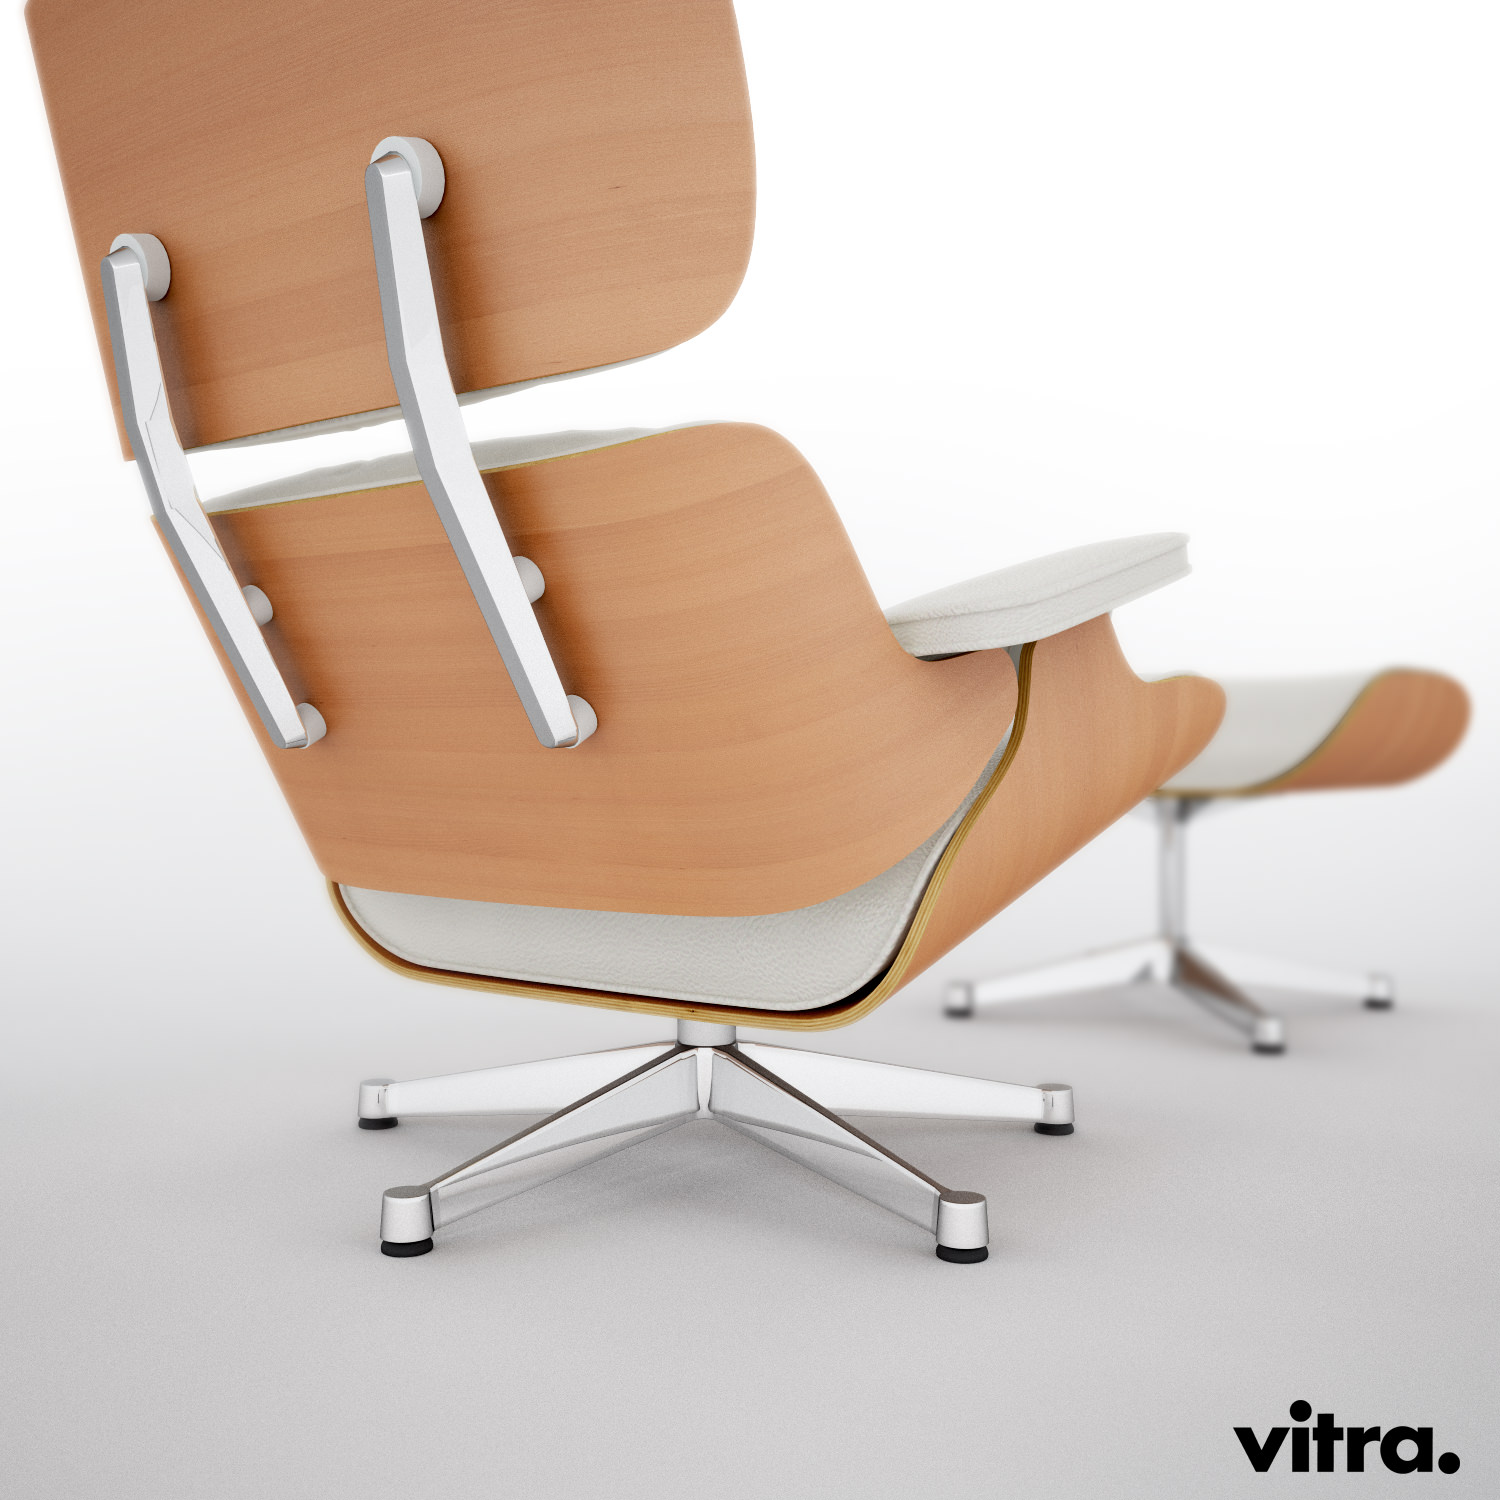 vitra lounge eames chair hi poly 3d model c4d. Black Bedroom Furniture Sets. Home Design Ideas